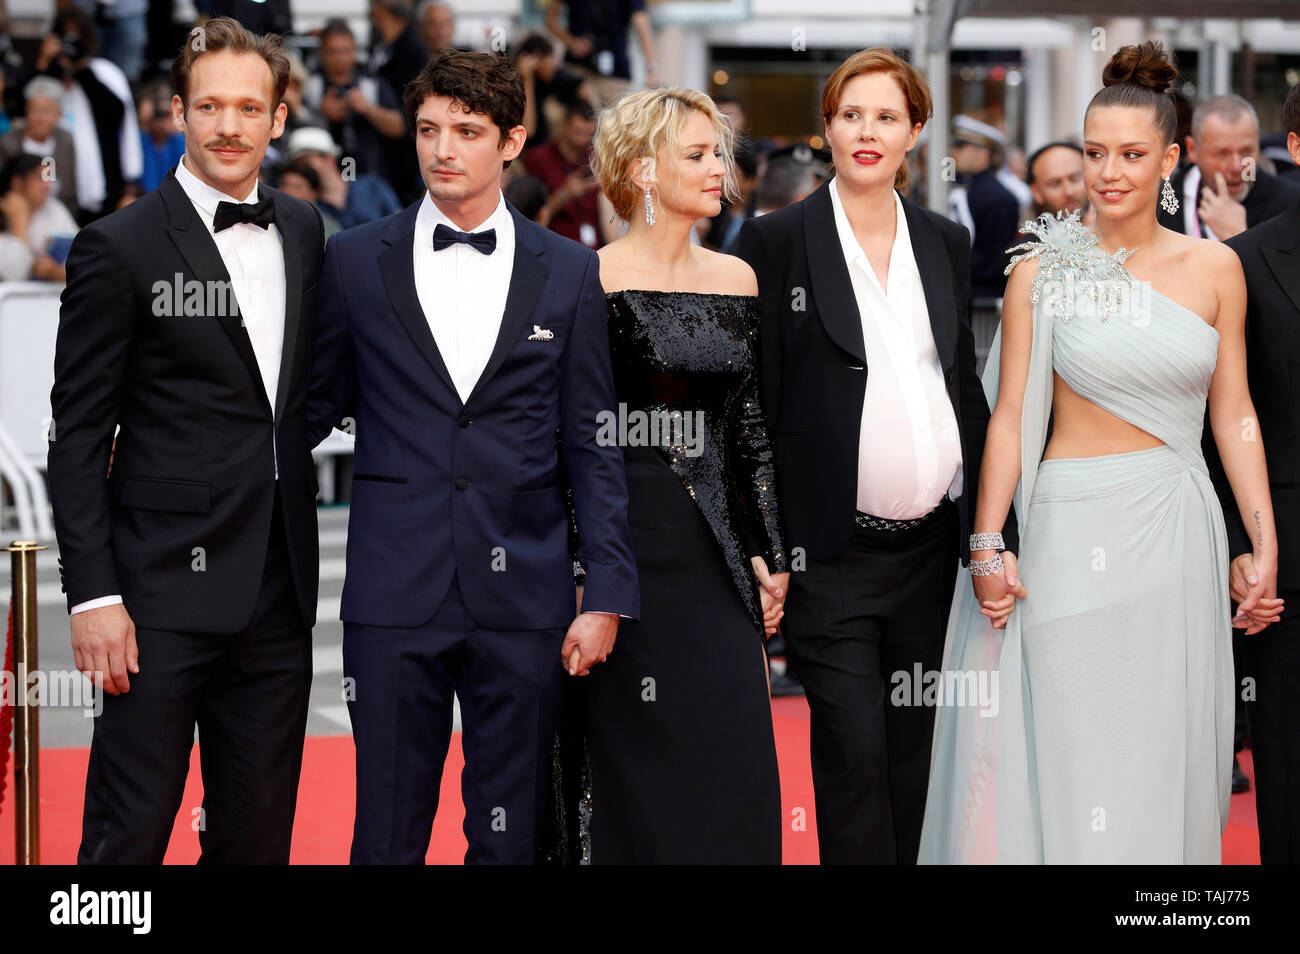 Cannes Film Festival France 25th May 2019 Paul Hamy Niels Schneider Virginie Efira Justine Triet Adele Exarchopoulos Attending The Sibyl Premiere During The 72nd Cannes Film Festival At The Palais Des Festivals